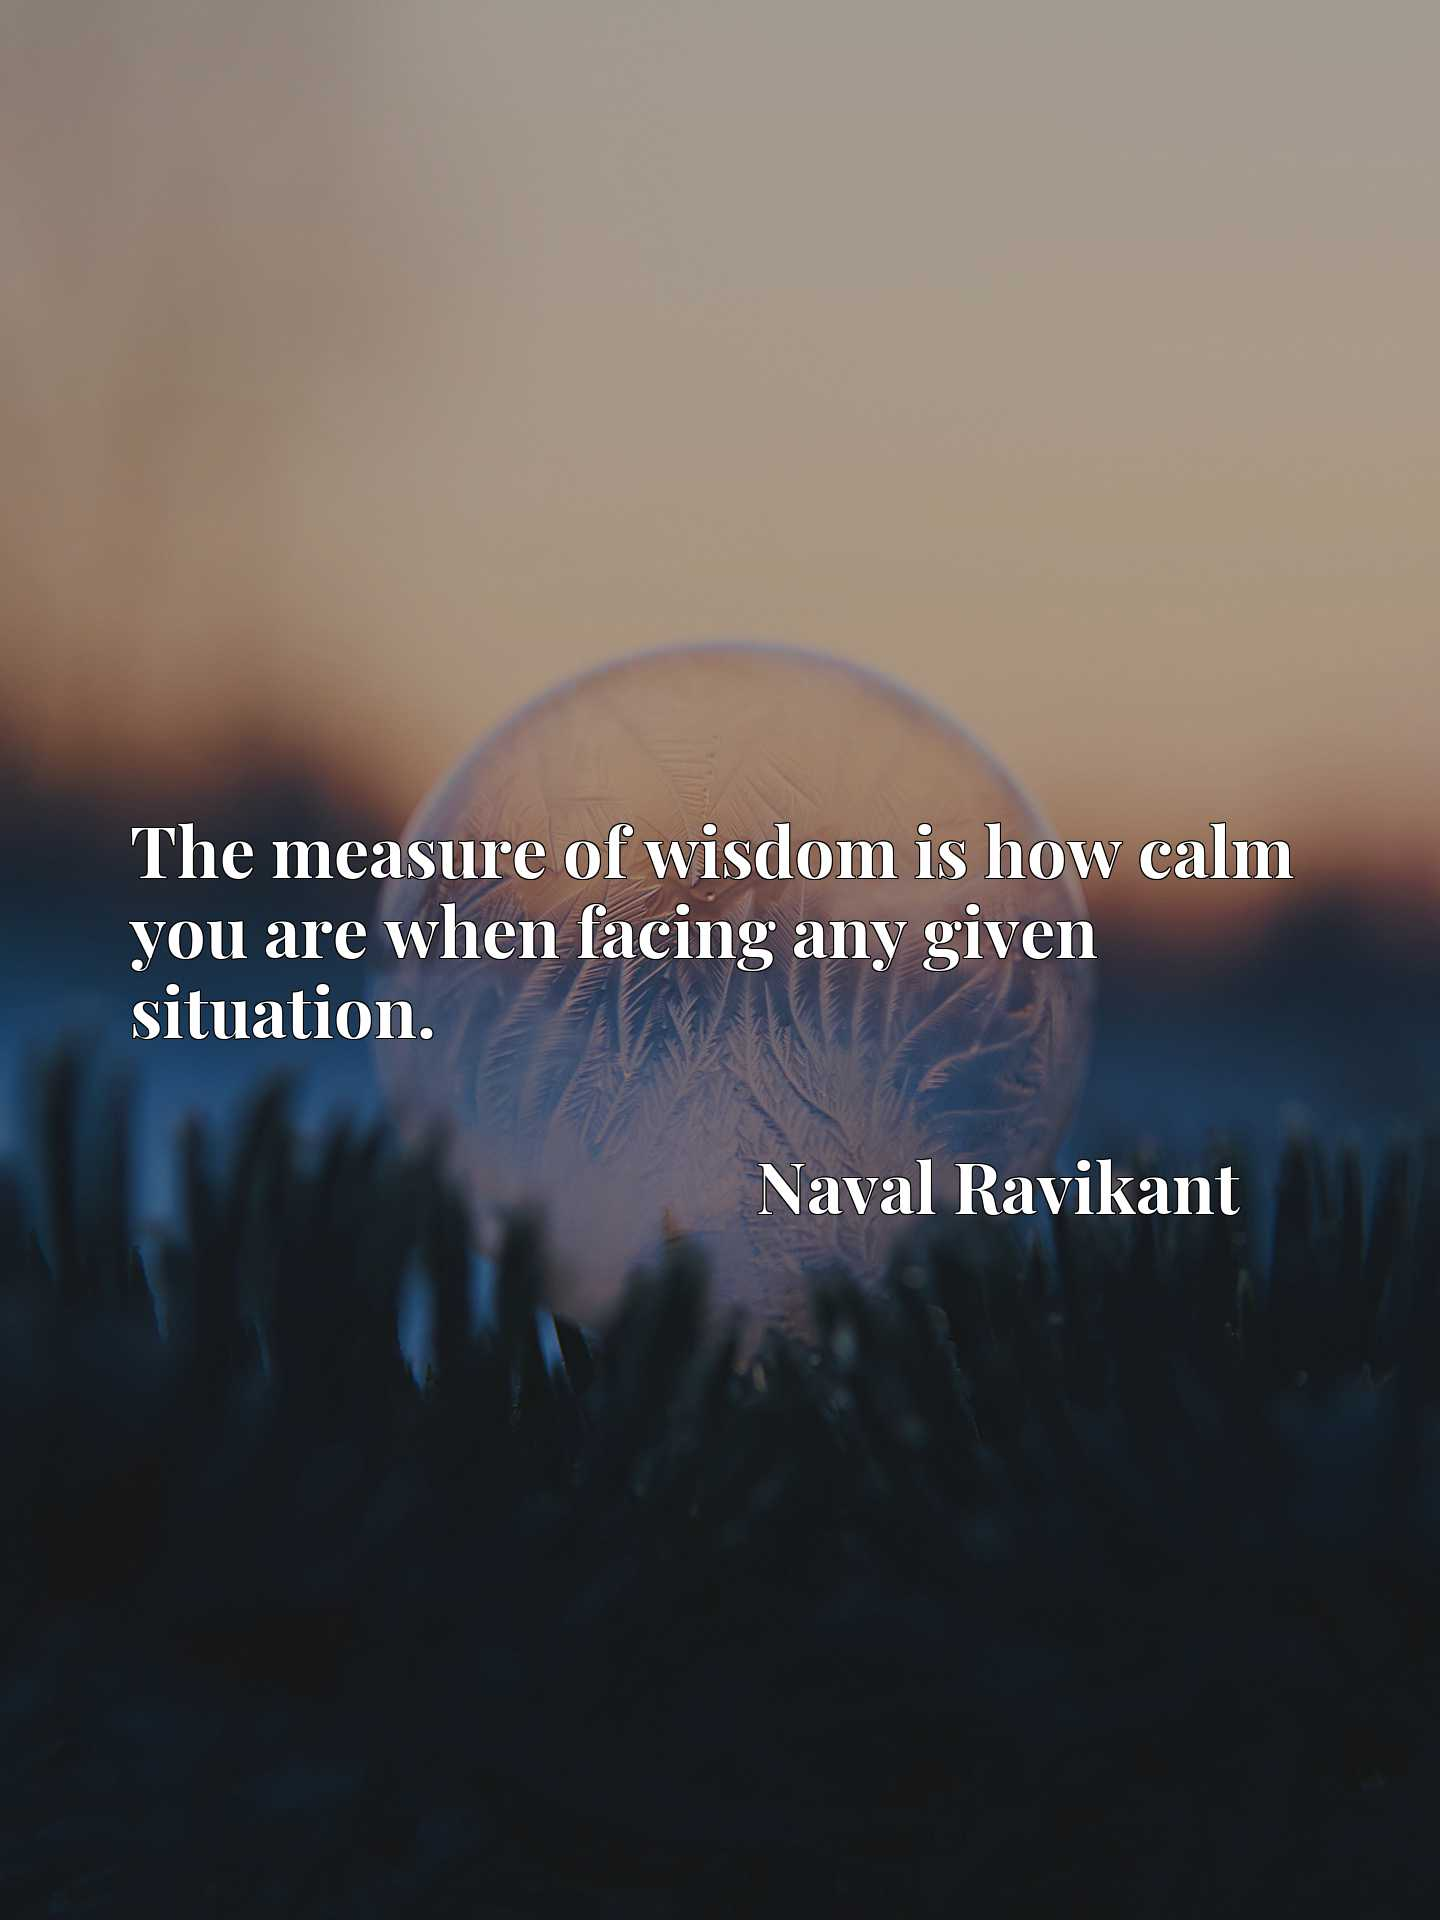 Quote Picture :The measure of wisdom is how calm you are when facing any given situation.